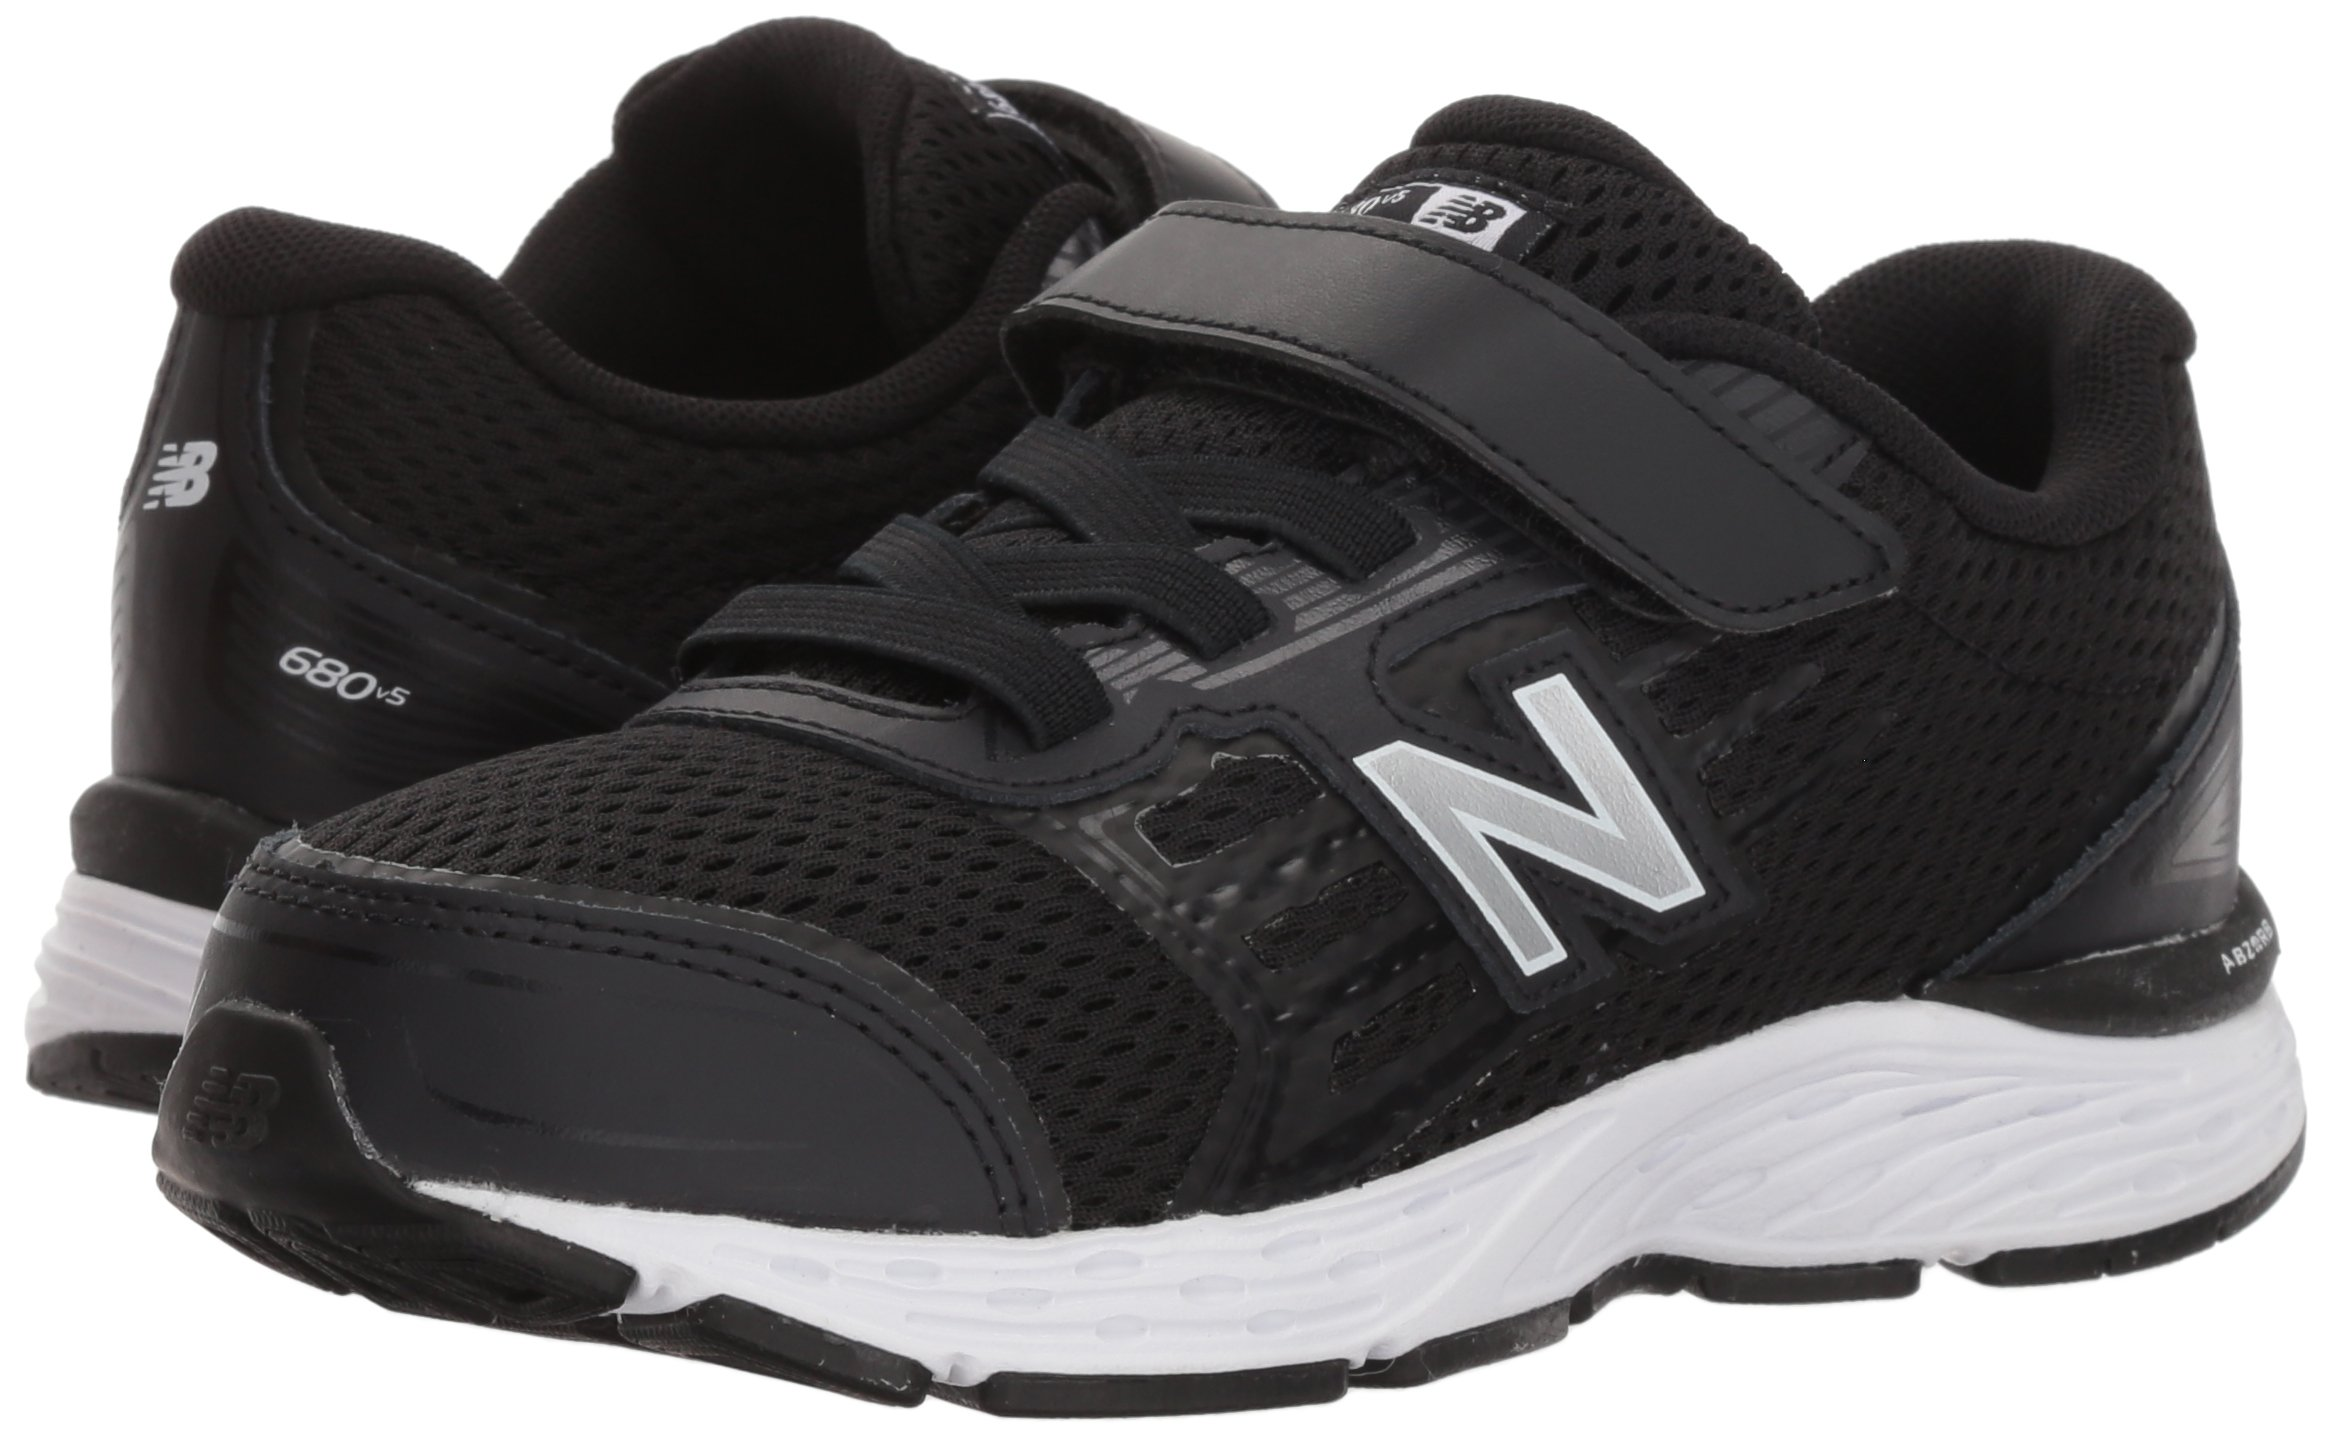 New Balance Boys' 680v5 Hook and Loop Running Shoe, Black/White, 9 M US Toddler by New Balance (Image #5)